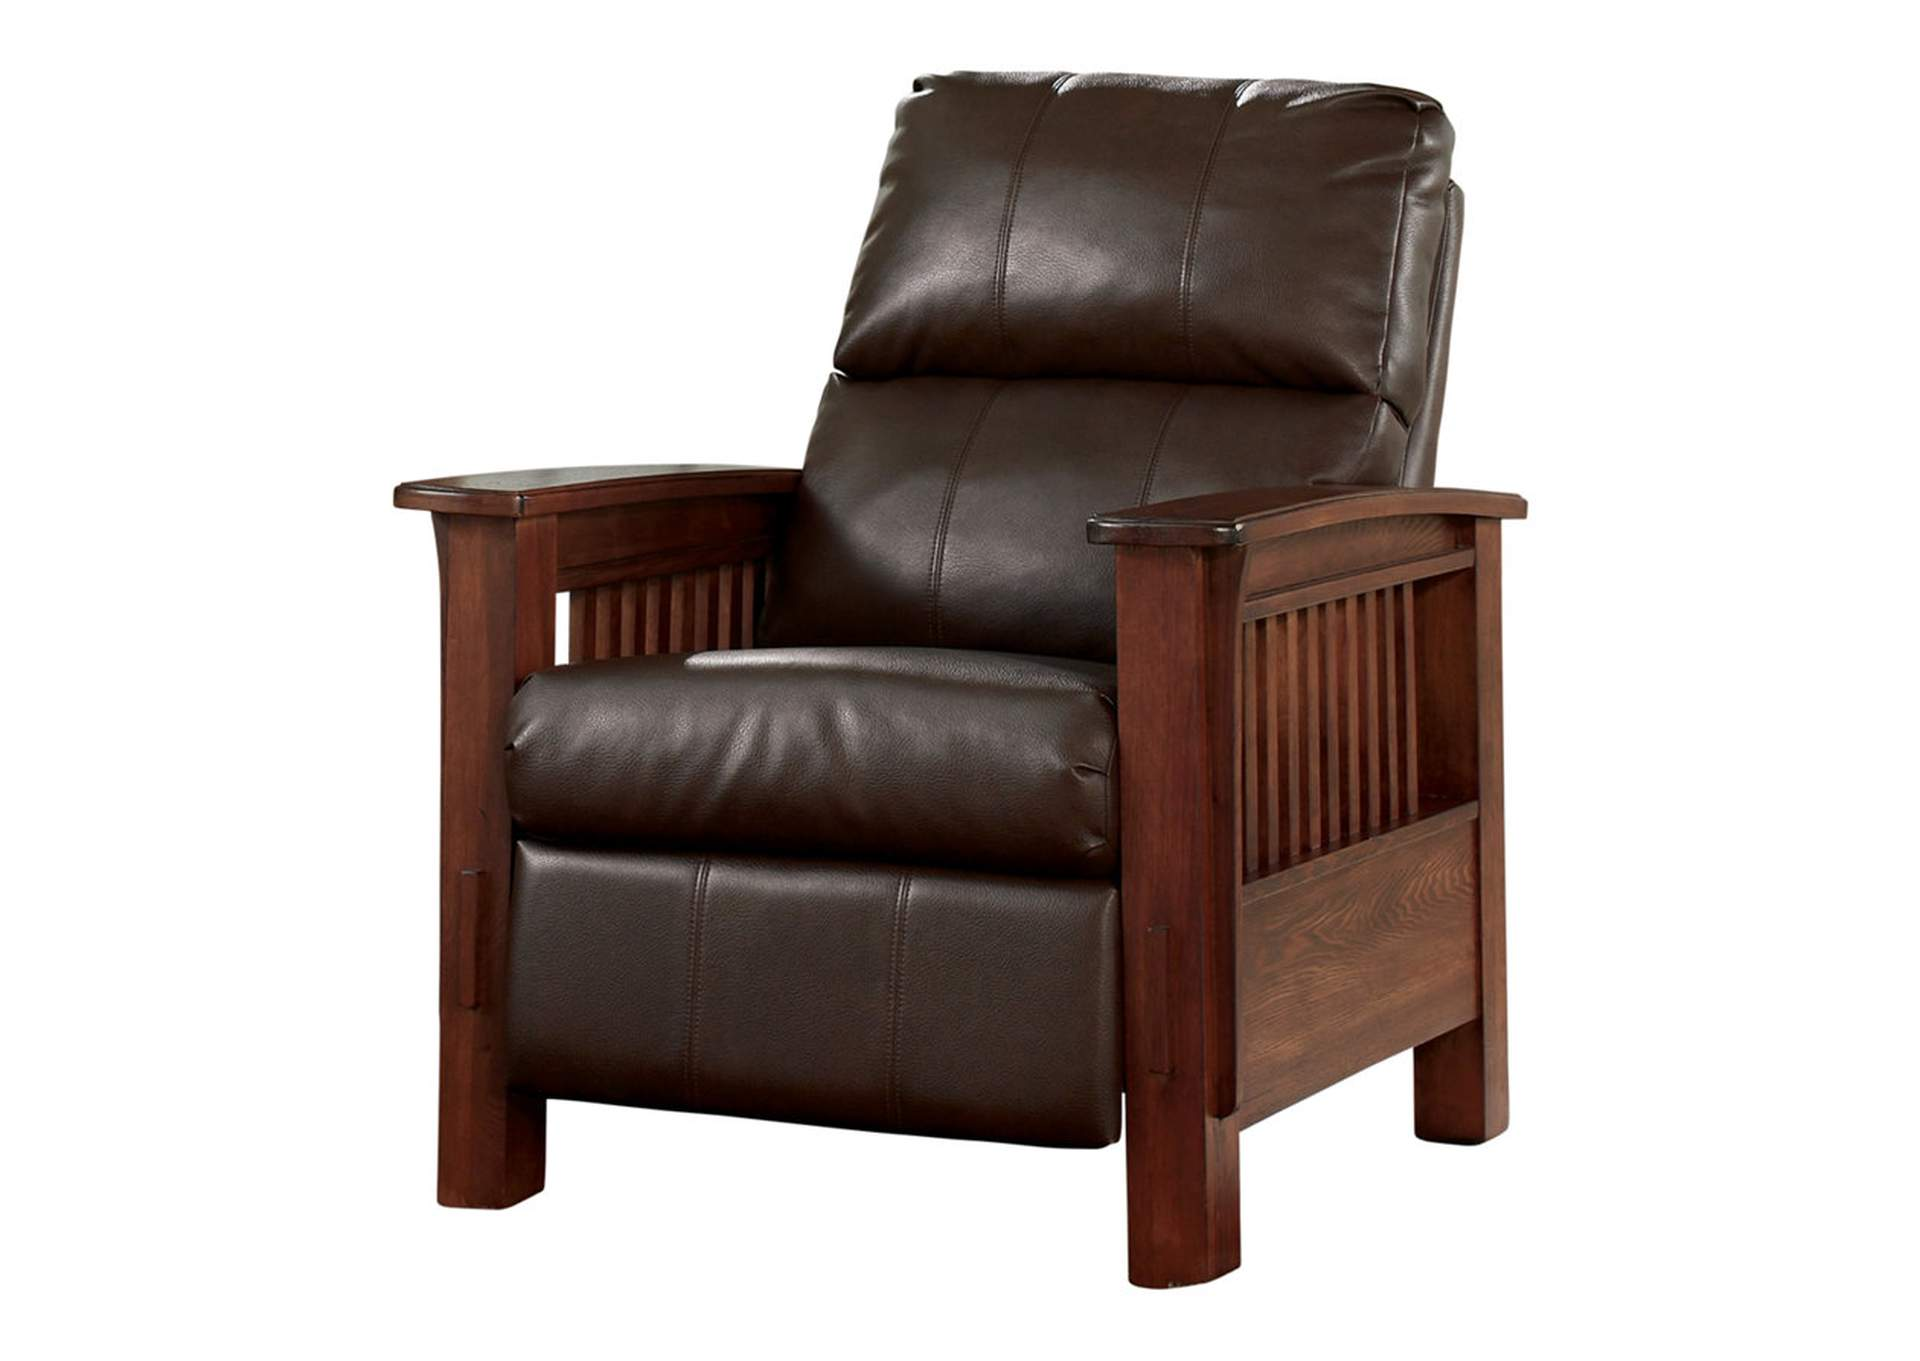 Santa Fe Bark High Leg Recliner,Signature Design By Ashley